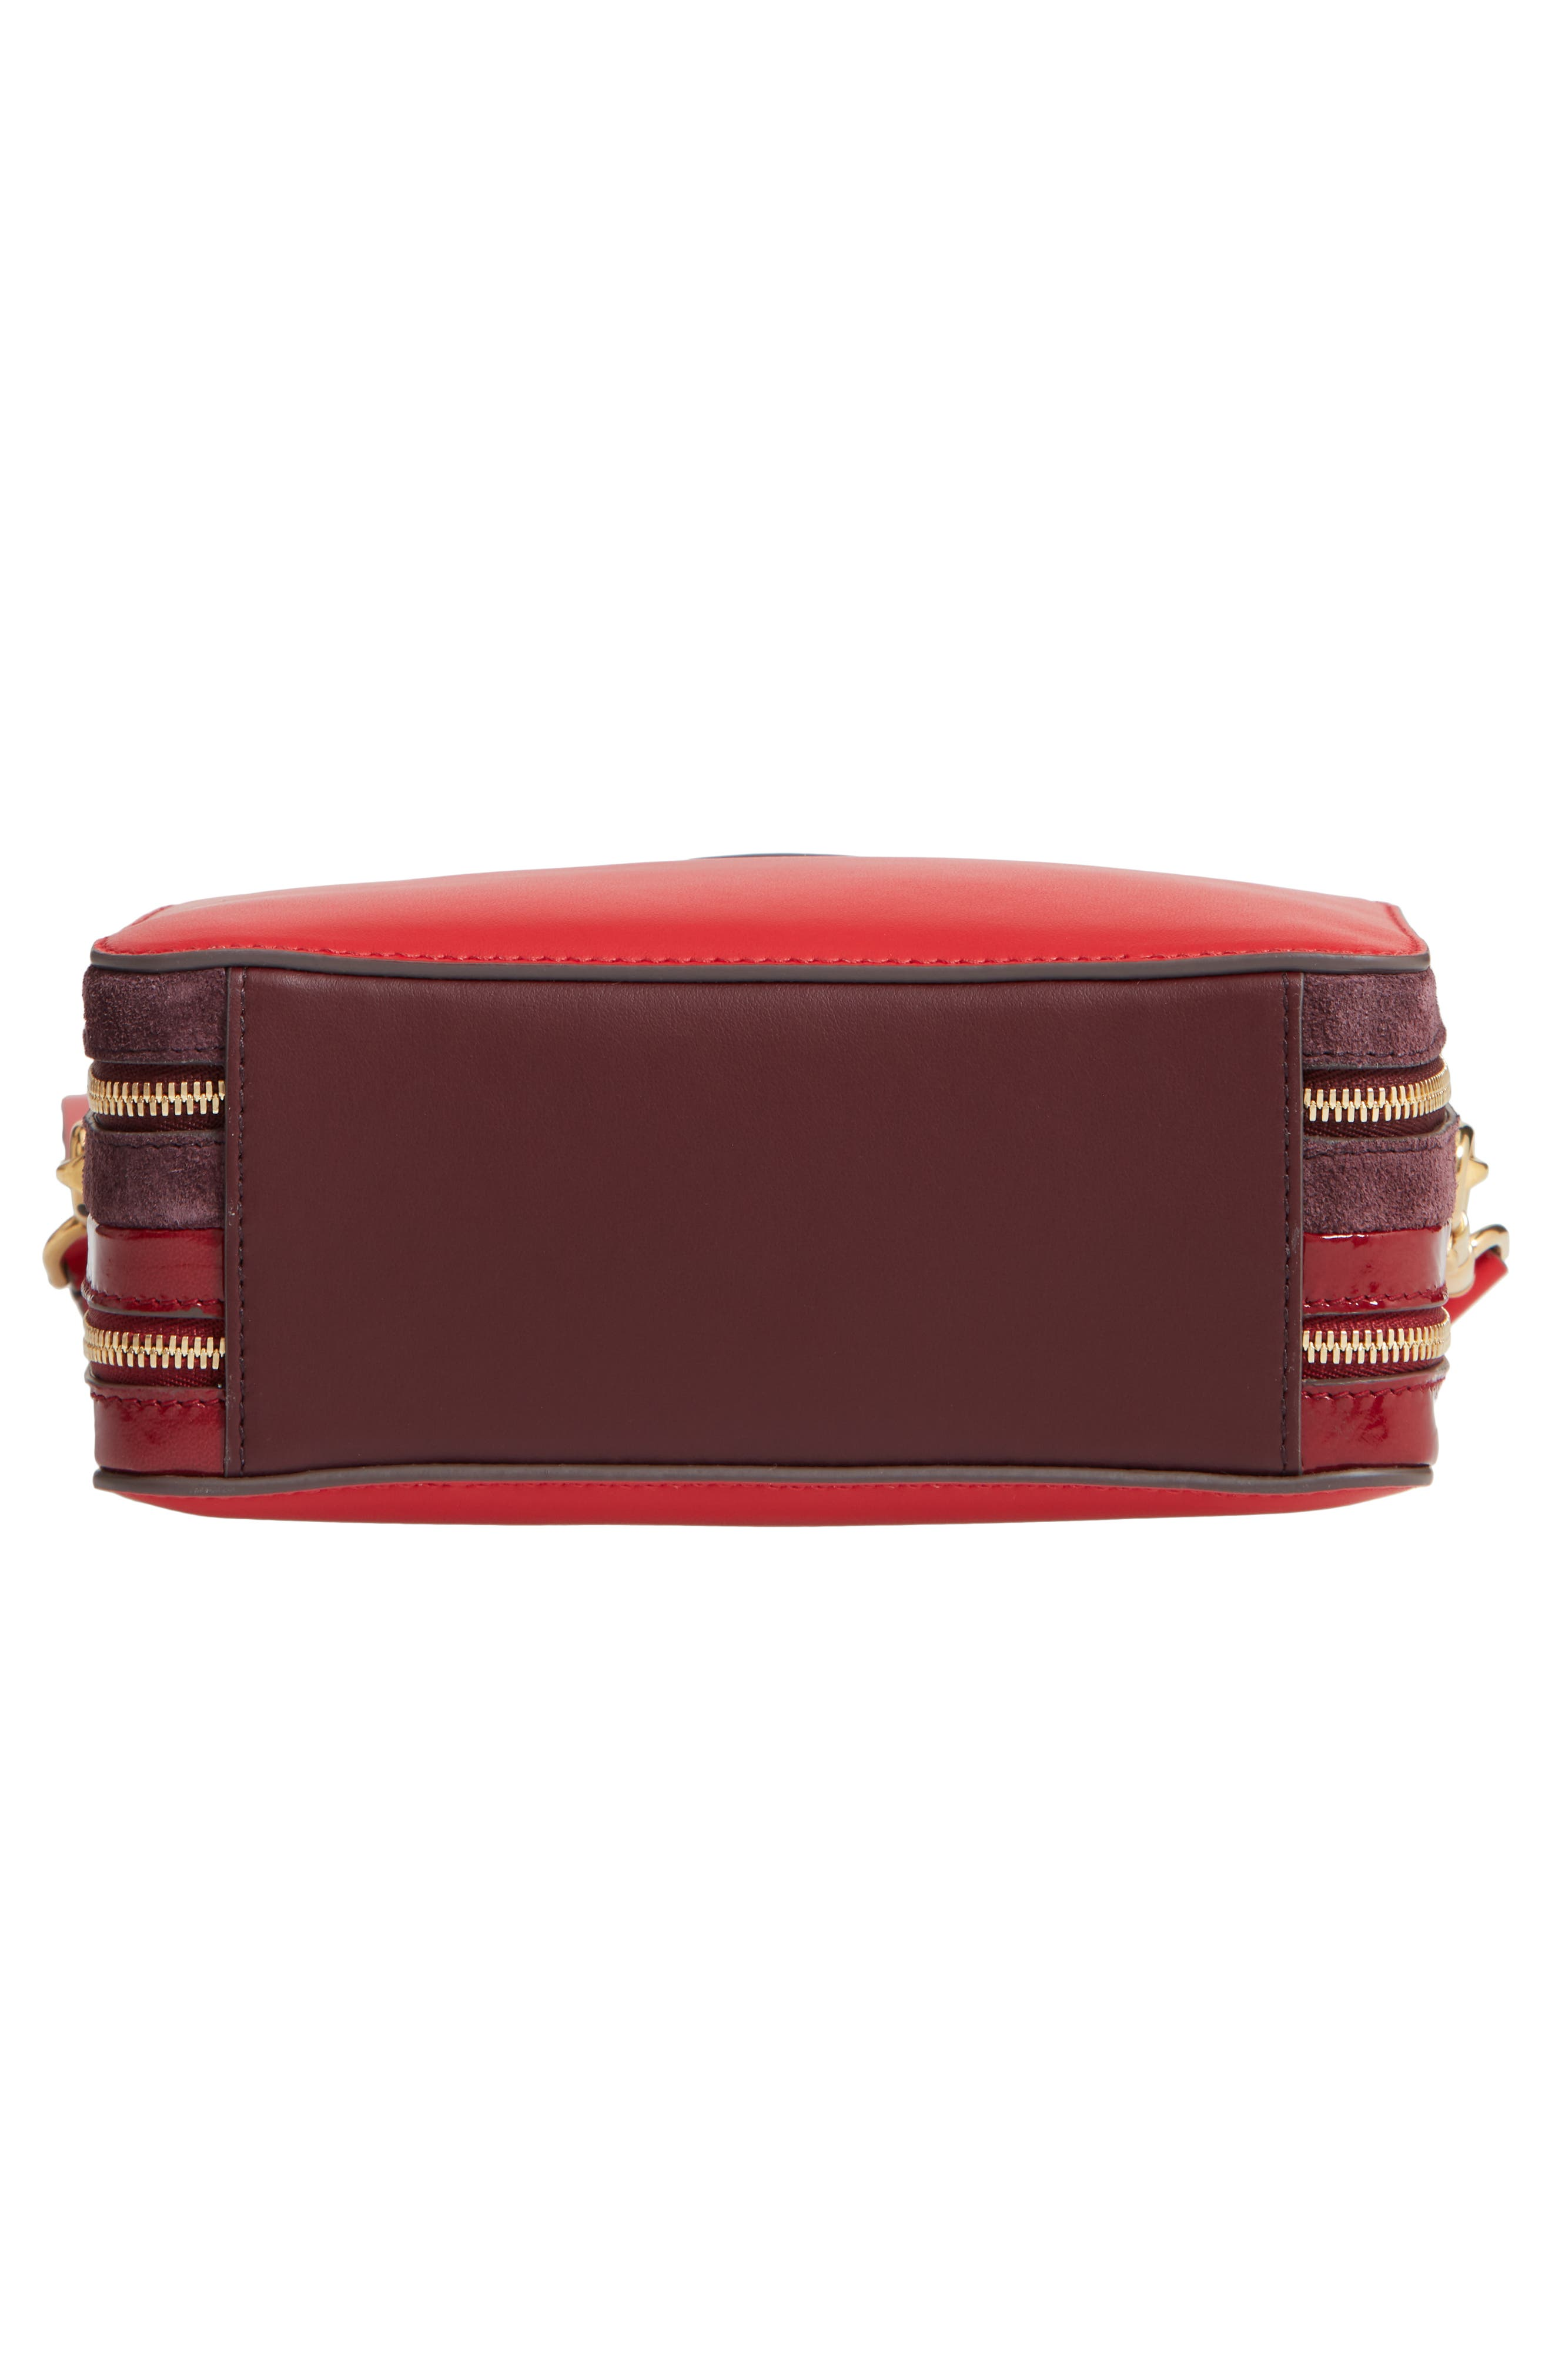 The Double Stack Leather Crossbody Bag,                             Alternate thumbnail 6, color,                             BRIGHT RED/ OXBLOOD